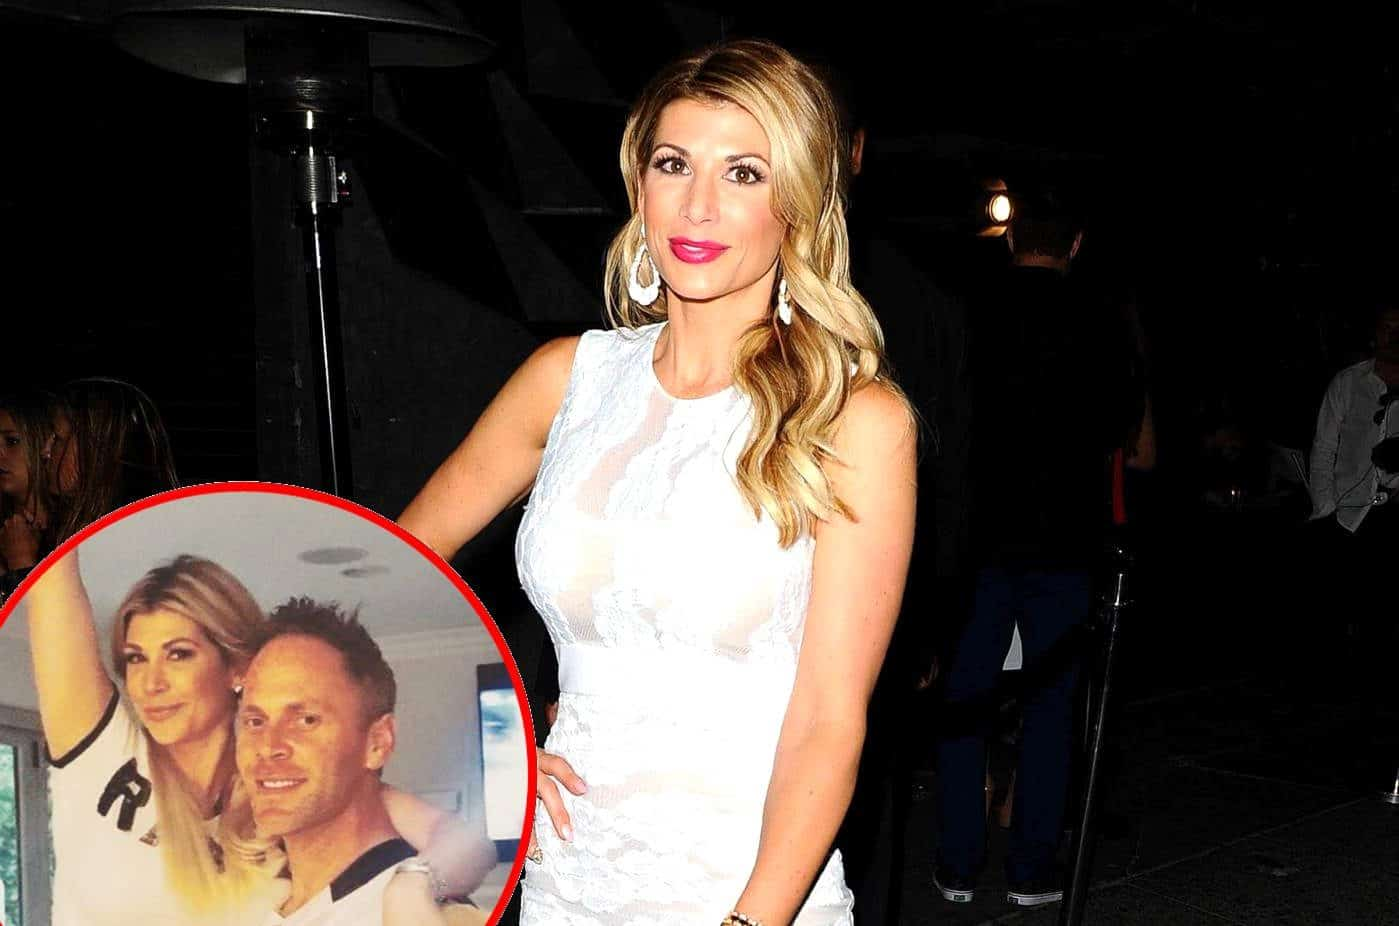 PHOTOS: RHOC's Alexis Bellino Has a New Boyfriend, Is She Pregnant?